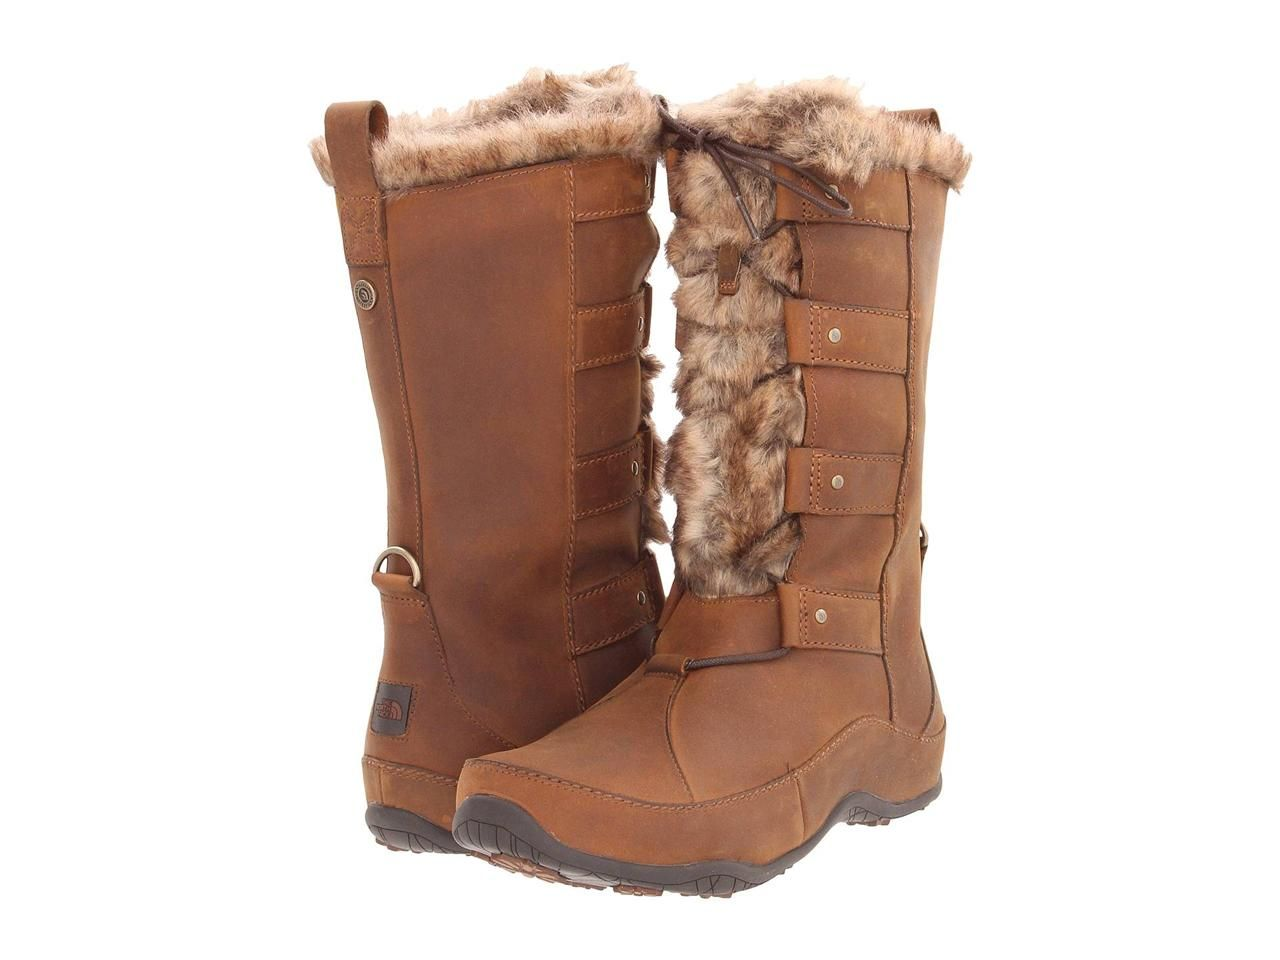 004a94d5c The-North-Face-185-Abby-IV-4-Luxe-Women-Boot-Shoe-Brown-Leather-Fur ...